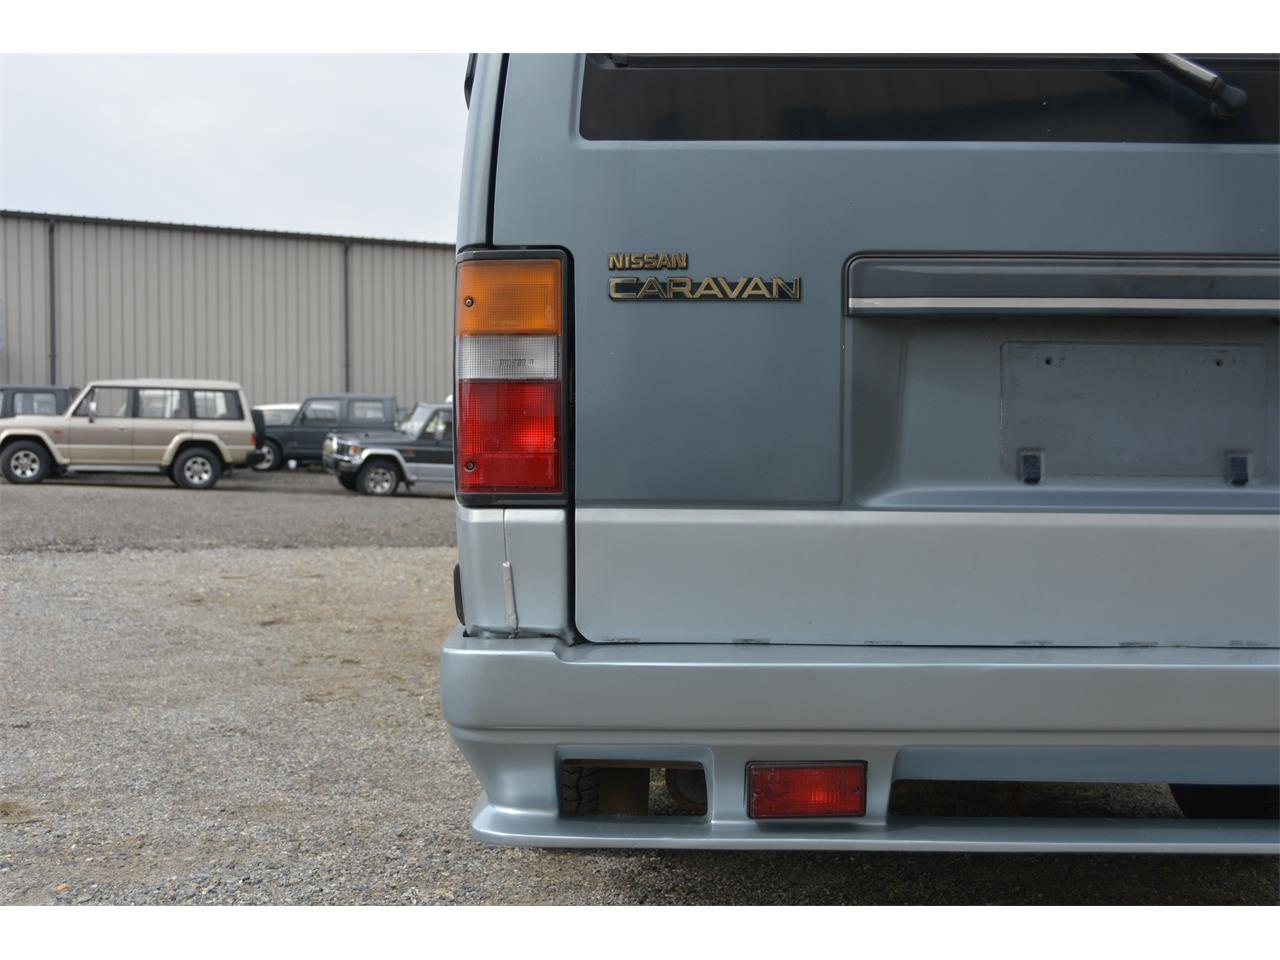 Large Picture of '90 Nissan Caravan located in Virginia - $17,900.00 Offered by Duncan Imports & Classic Cars - LN58